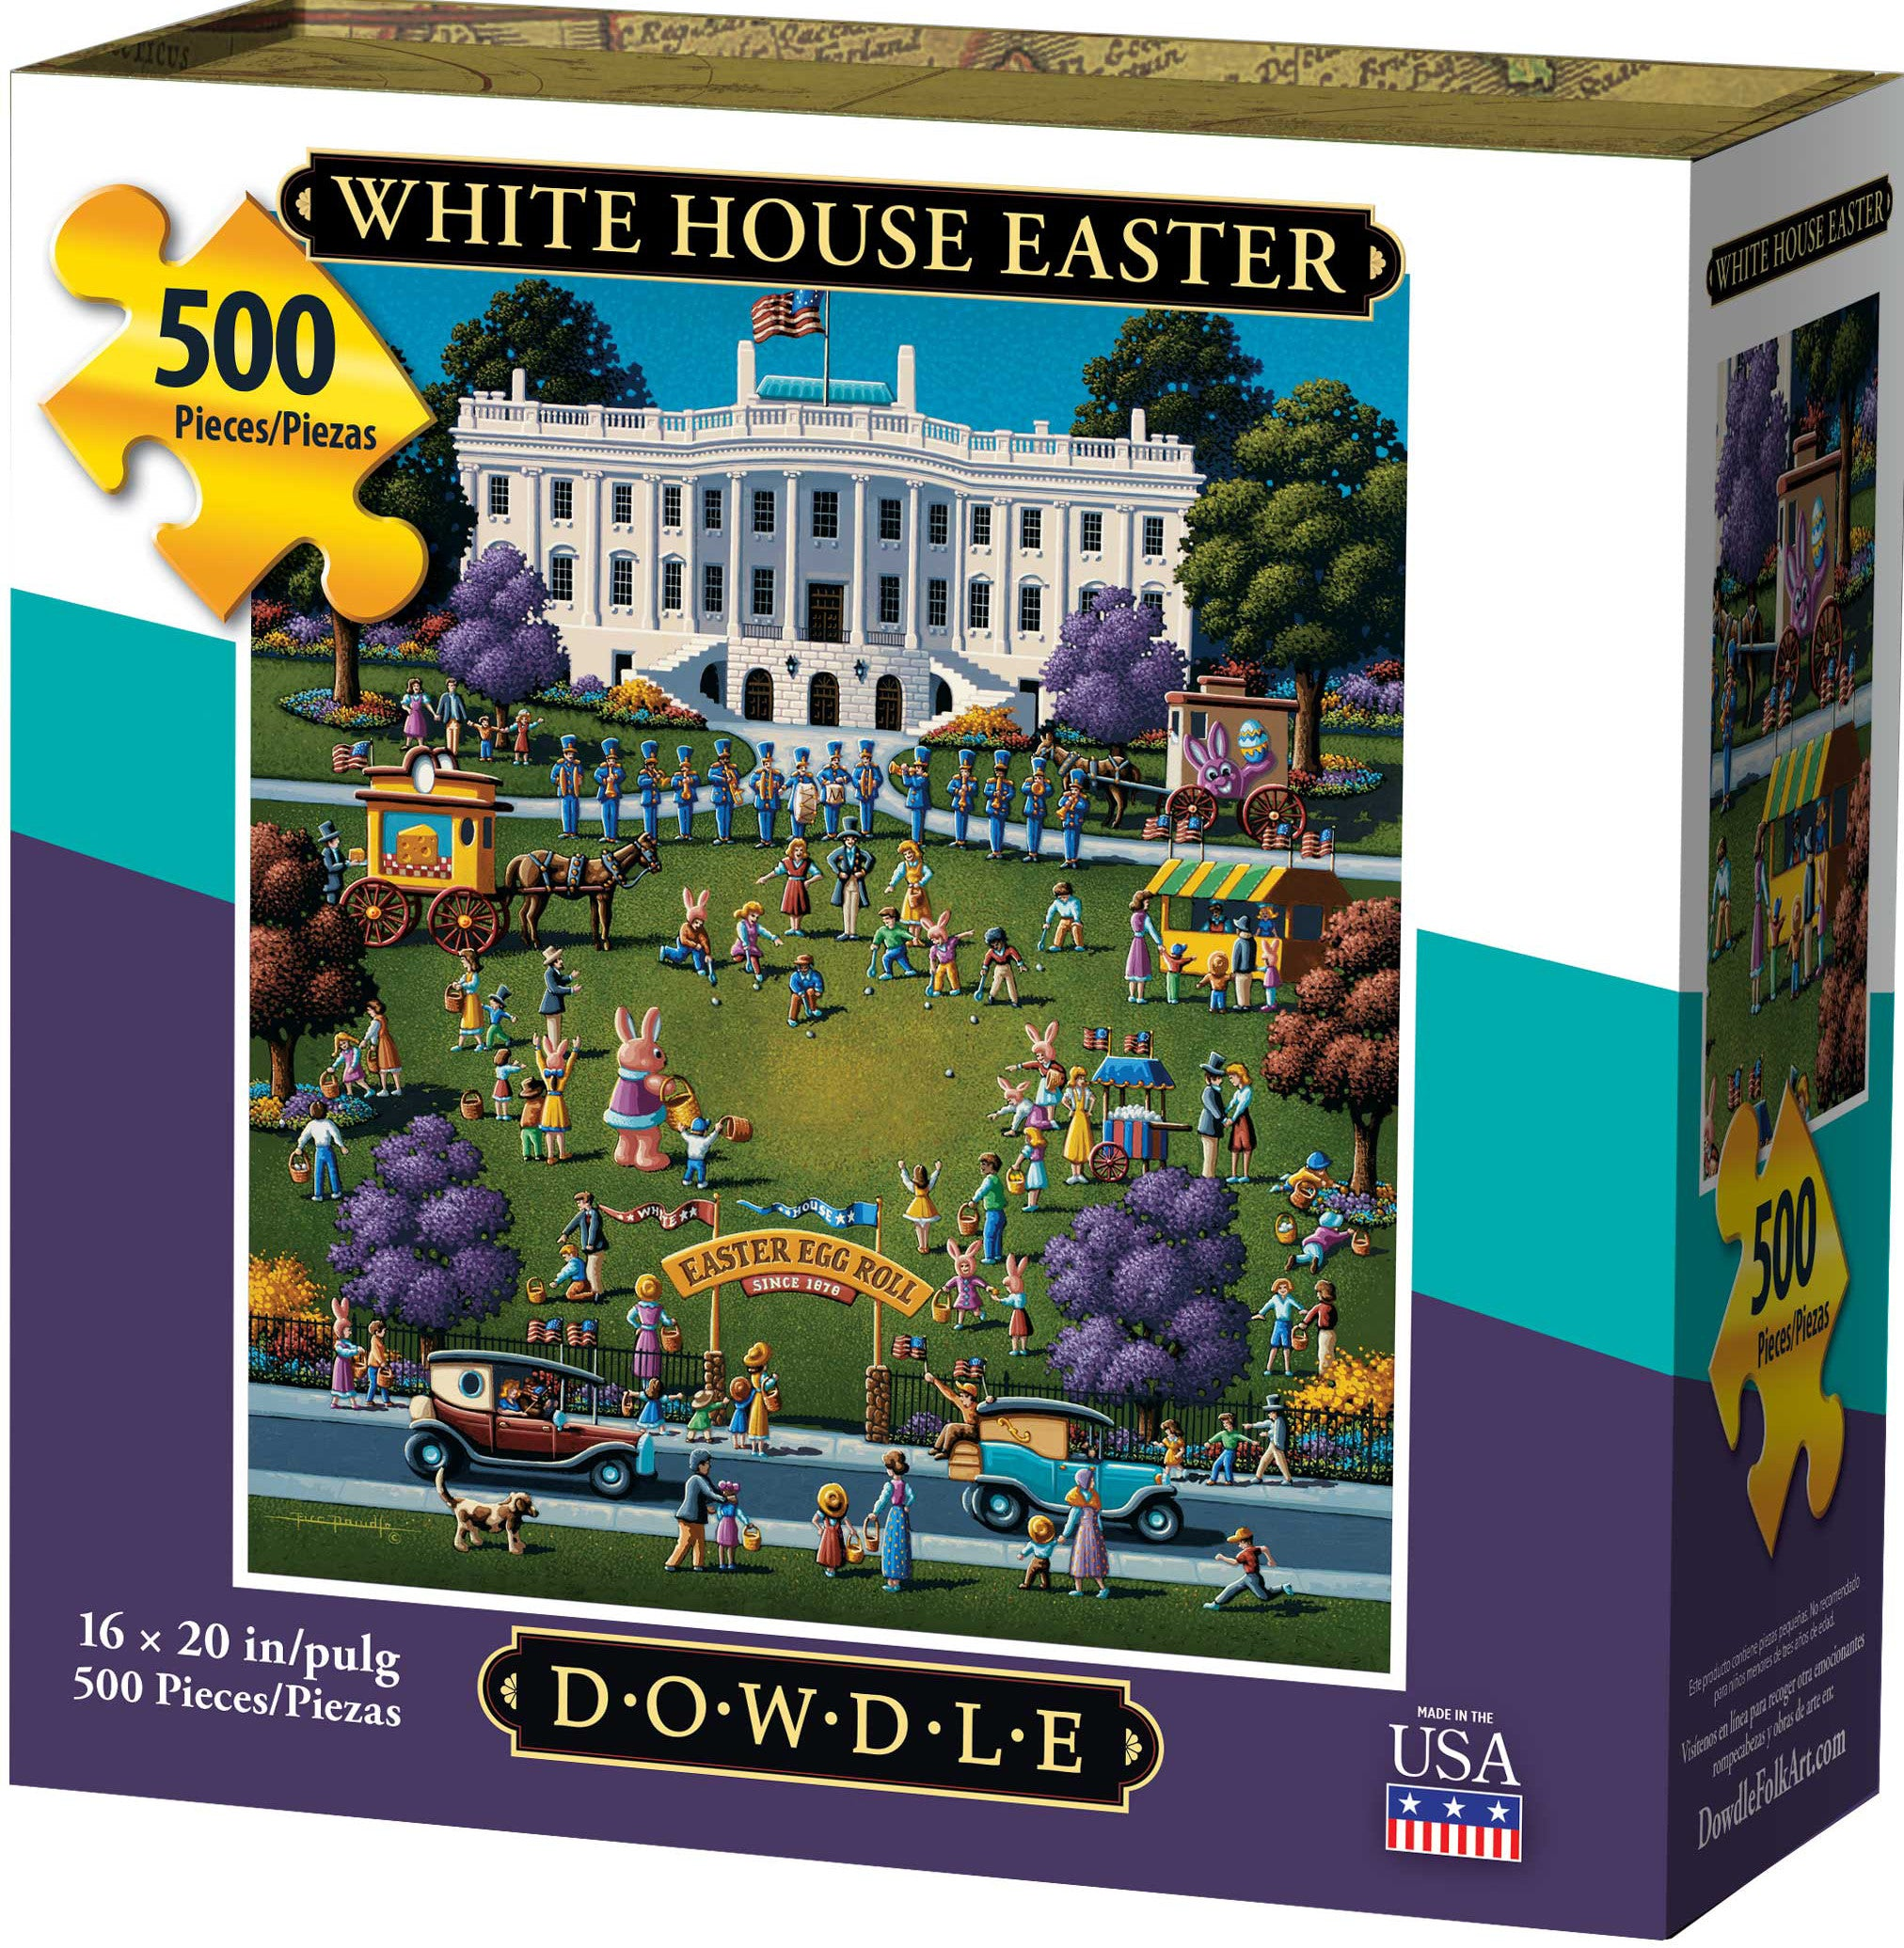 White house easter 500 piece puzzle white house gifts white house easter 500 piece puzzle negle